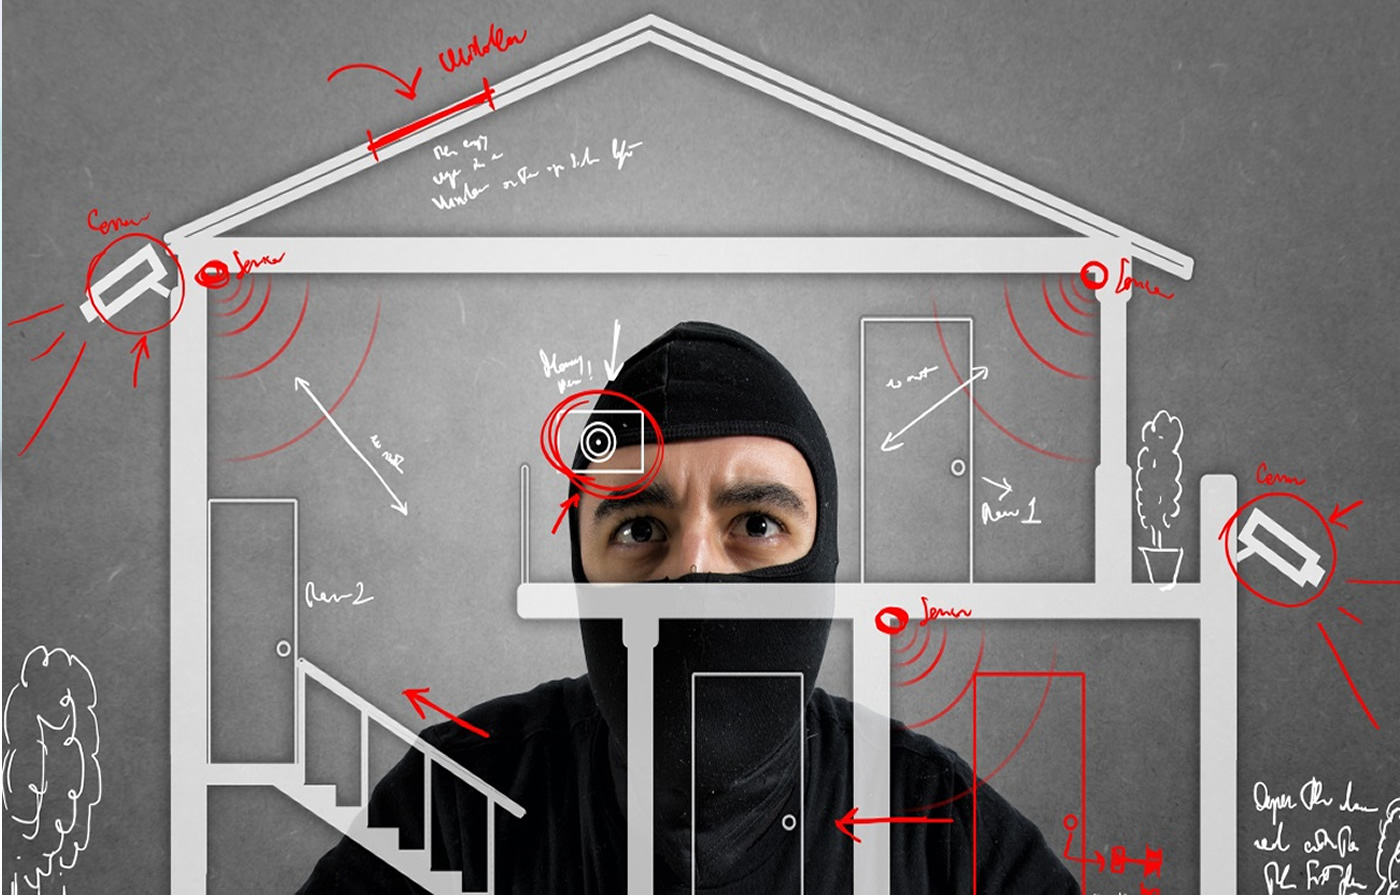 how-burglars-find-weak-spots-in-home-security